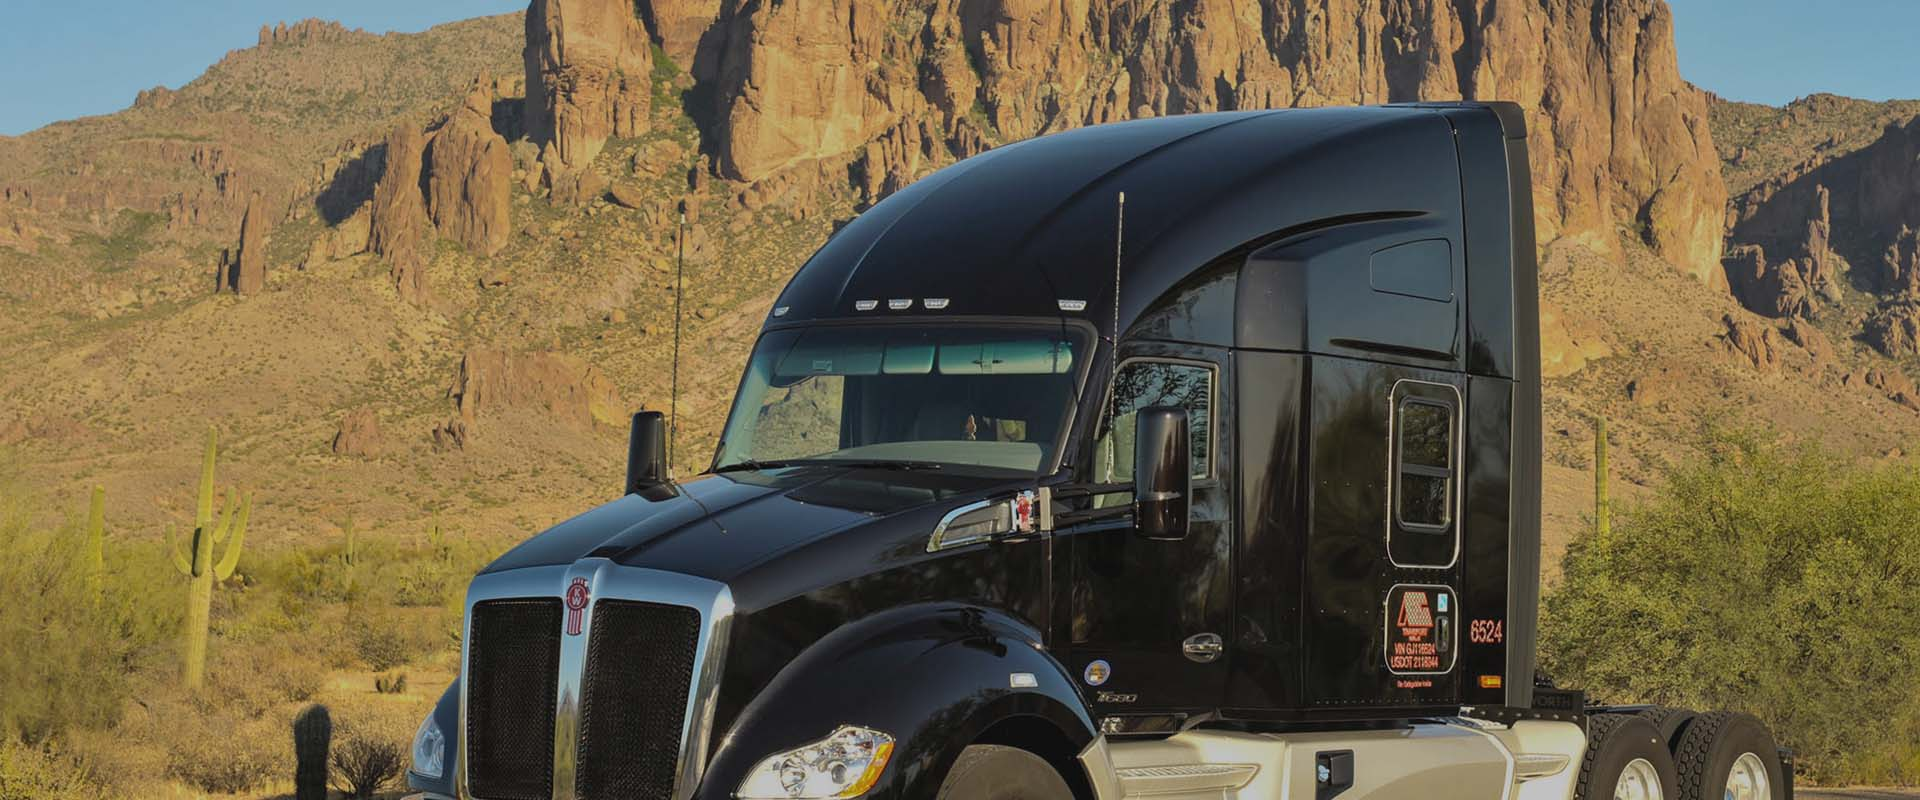 Full service freight brokerage services with ATG transportation in Mesa Arizona